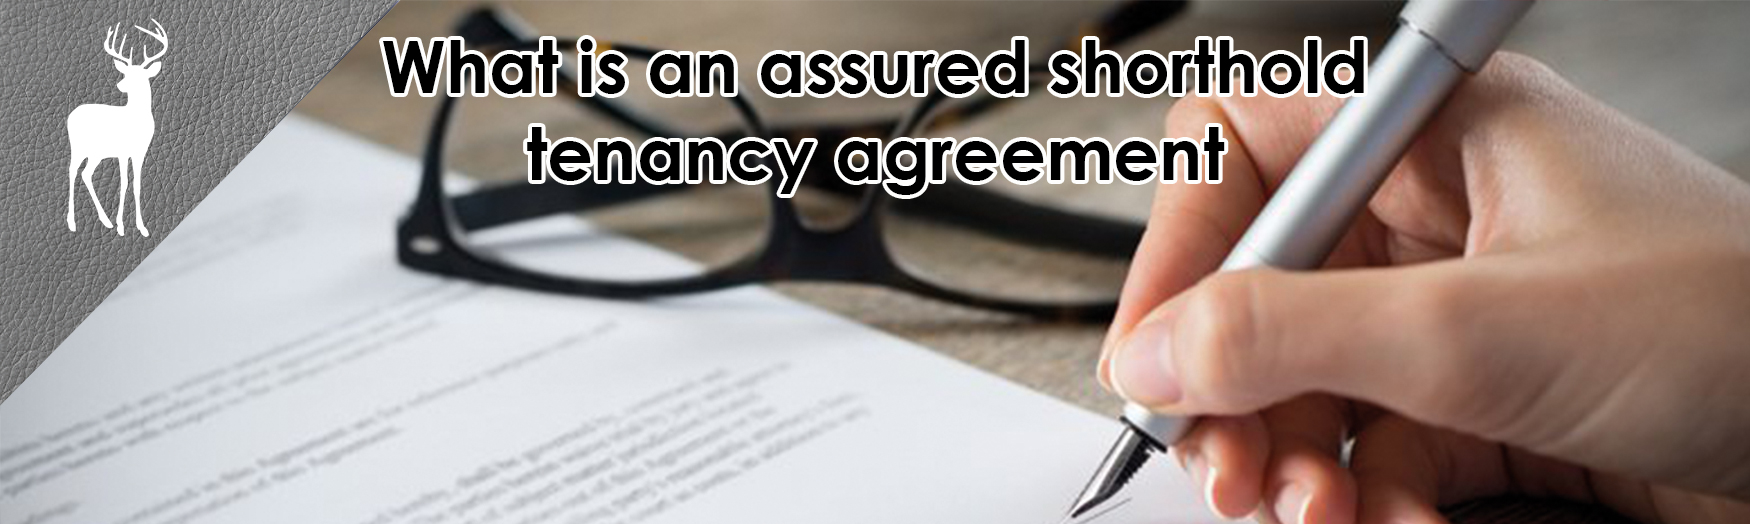 what is an assured shorthold tenancy agreement, landlord lettings contract, landlord guide to contracts, landlords guide to tenancy agreements